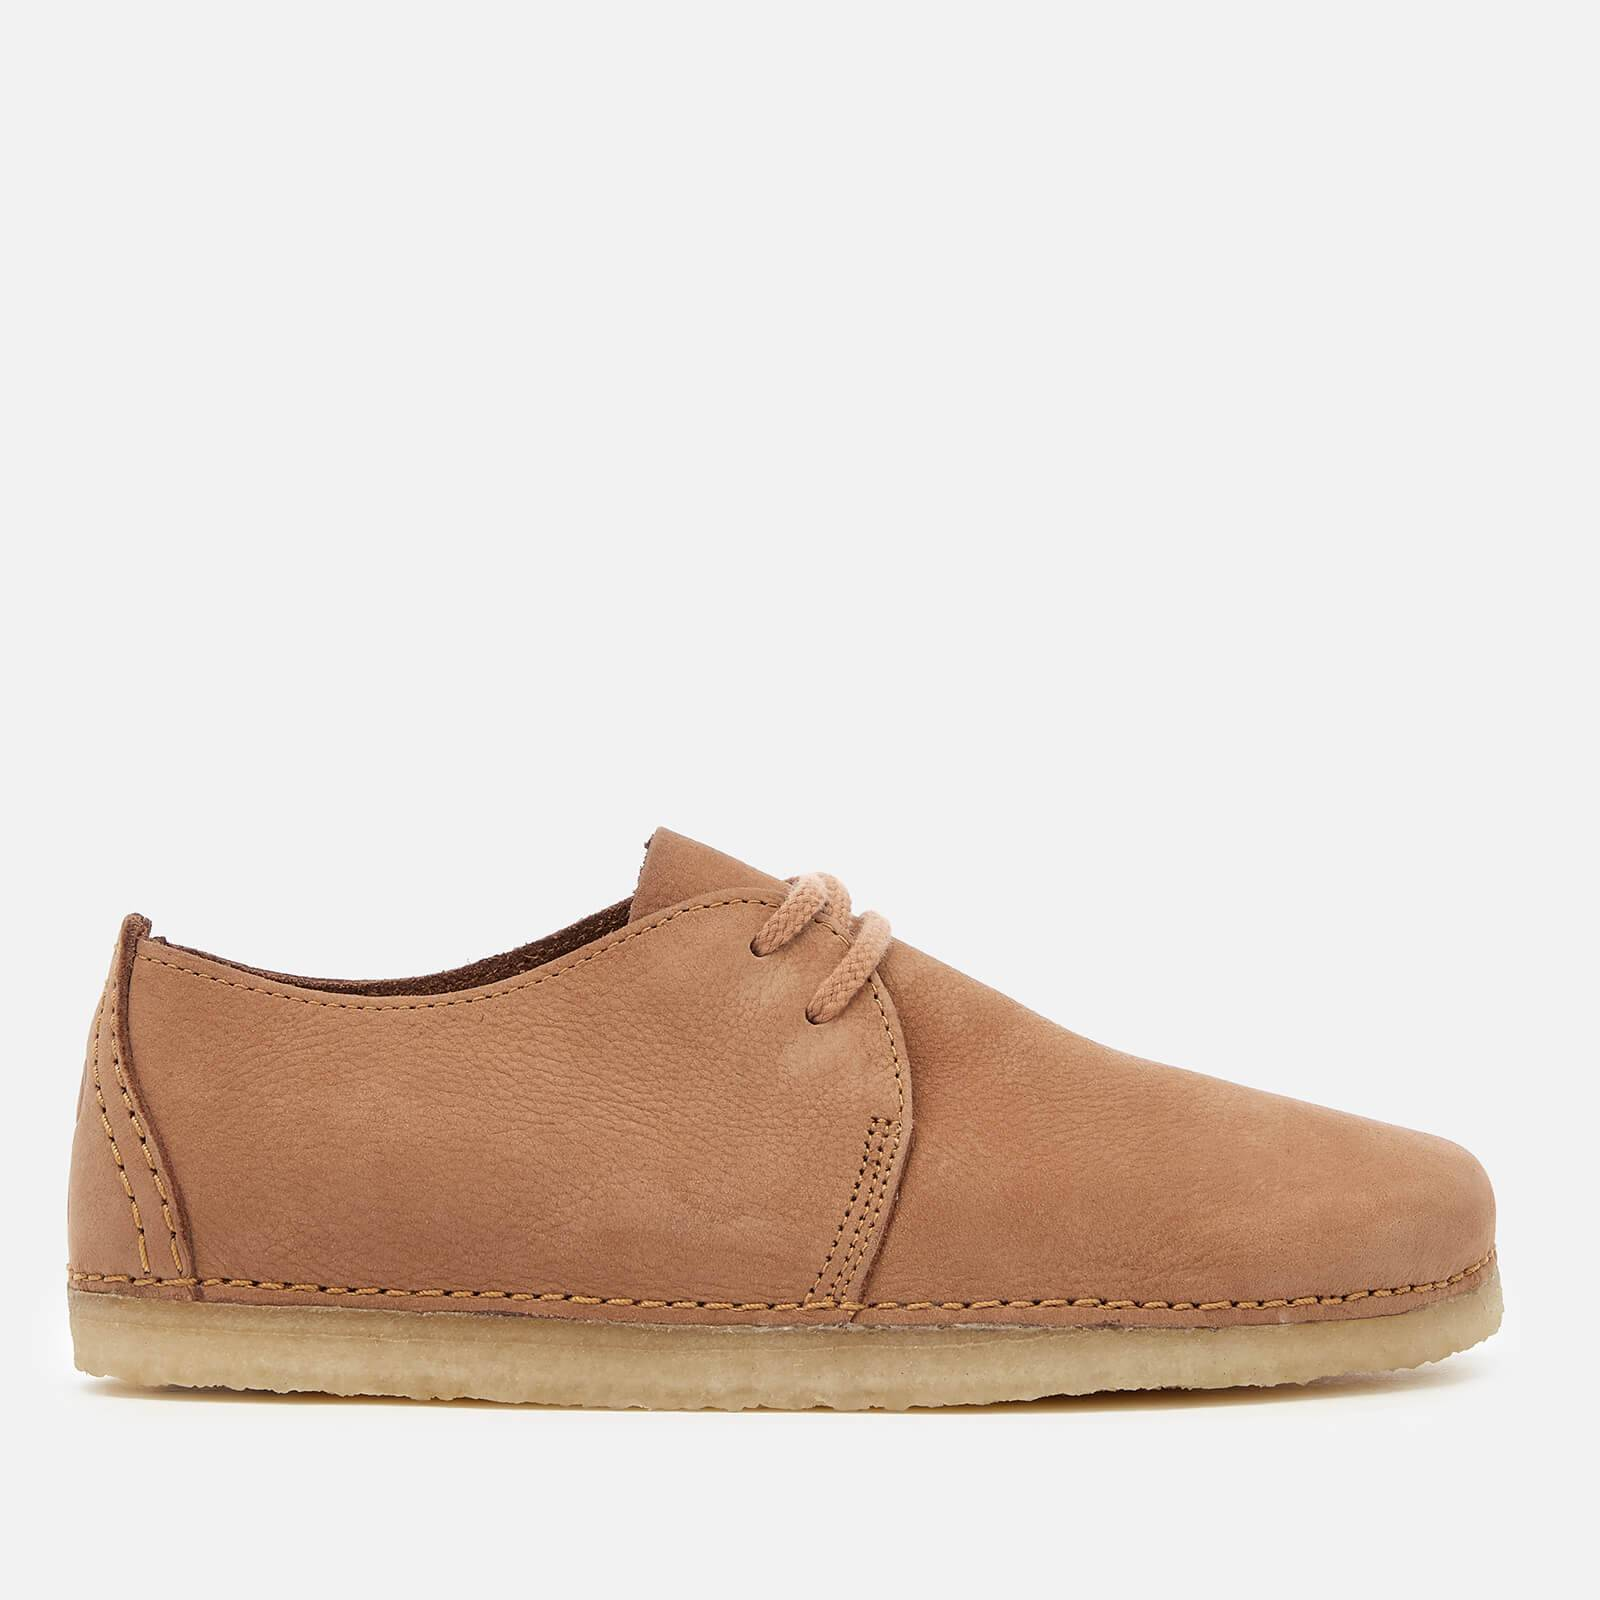 Clarks Originals Women's Ashton Nubuck Lace Up Shoes - Light Tan - UK 3 - Tan